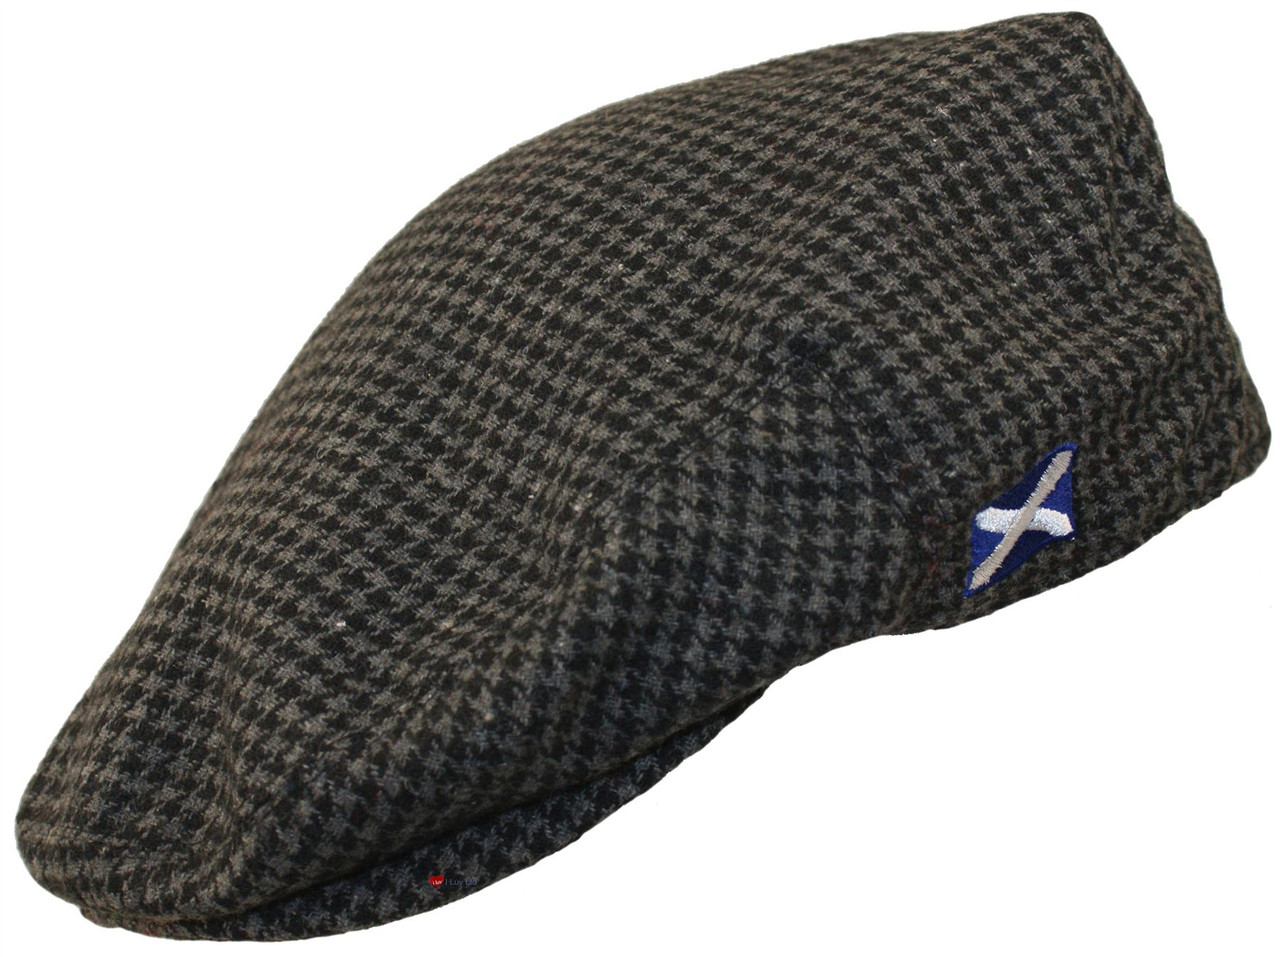 Scottish Cap Tweed Cap Co Saltire Logo Flat Cap Grey Houndstooth Design Flat  Cap 4ed10c4c5b2